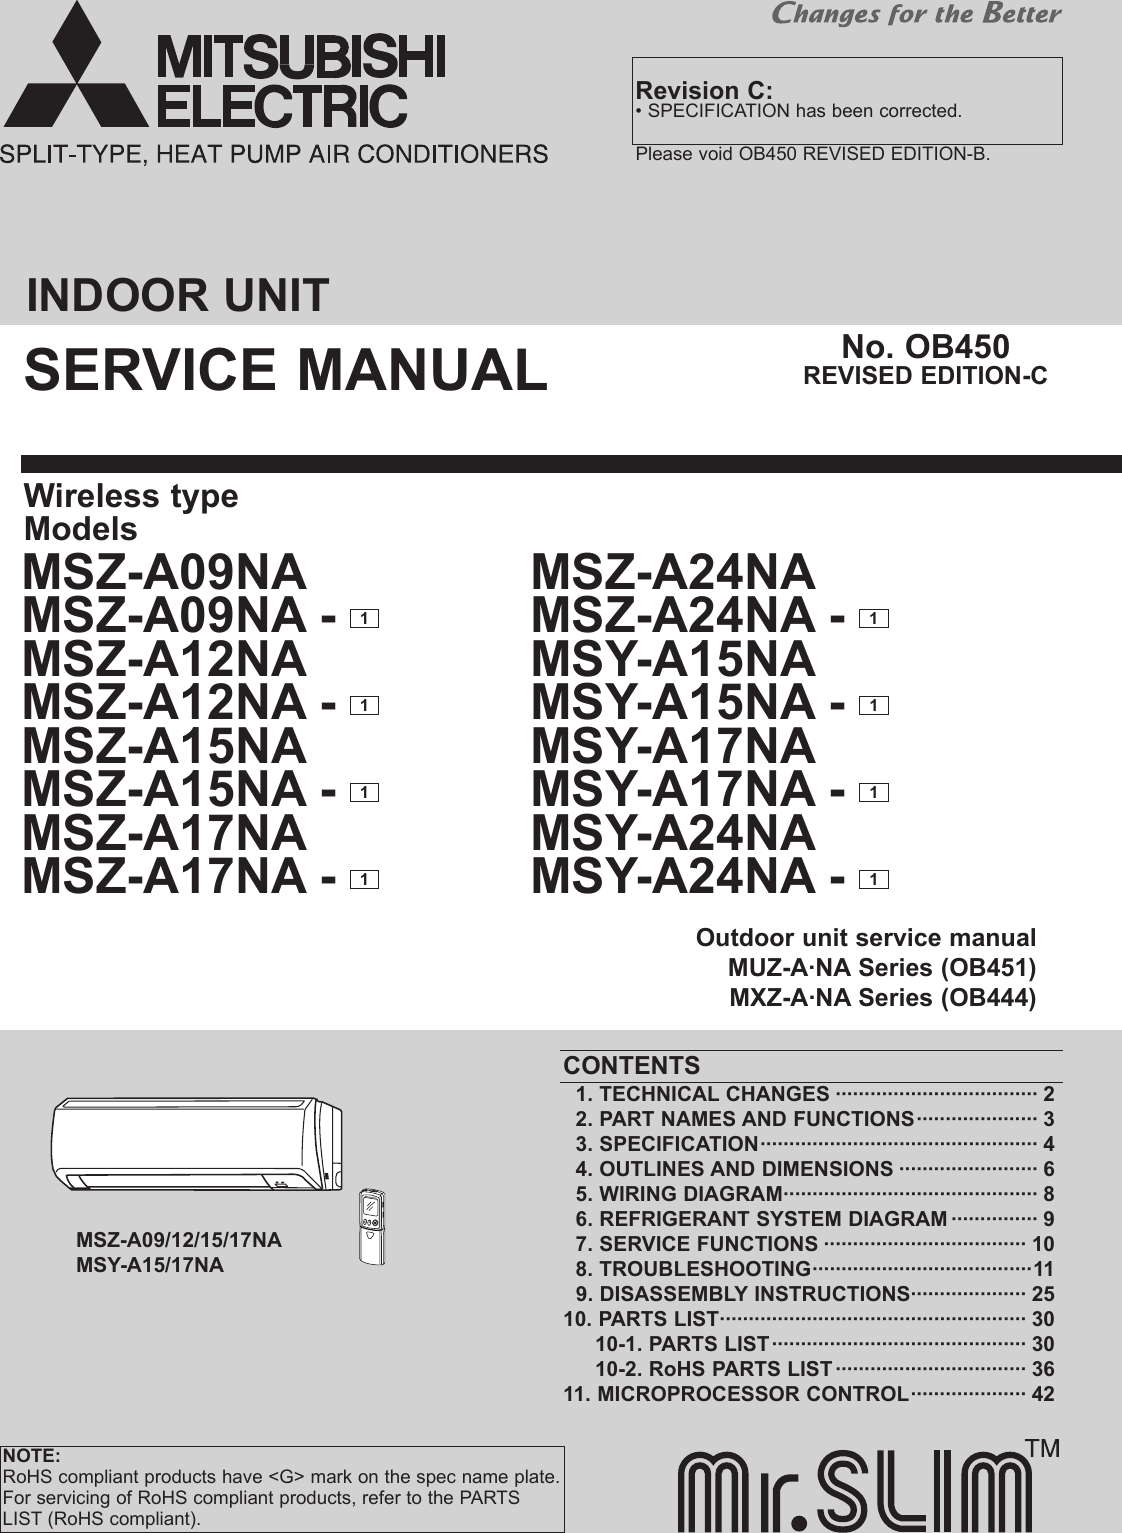 Logitech Msz A09na Users Manual Ob450c How To Wire An Air Conditioner For Control 5 Wires